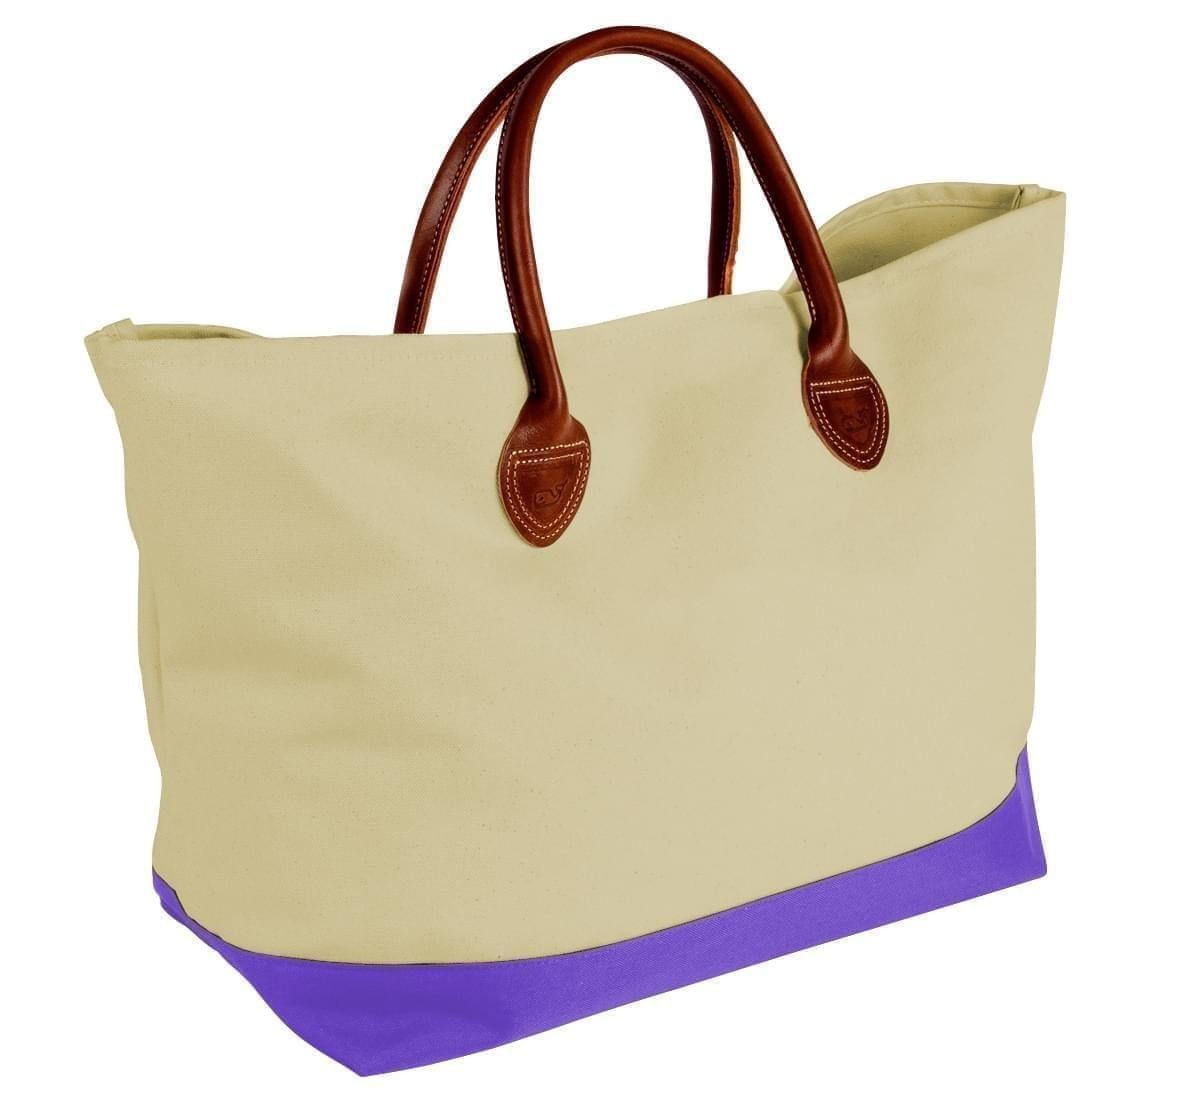 USA Made Canvas Leather Handle Totes, Natural-Purple, 10899-KK9